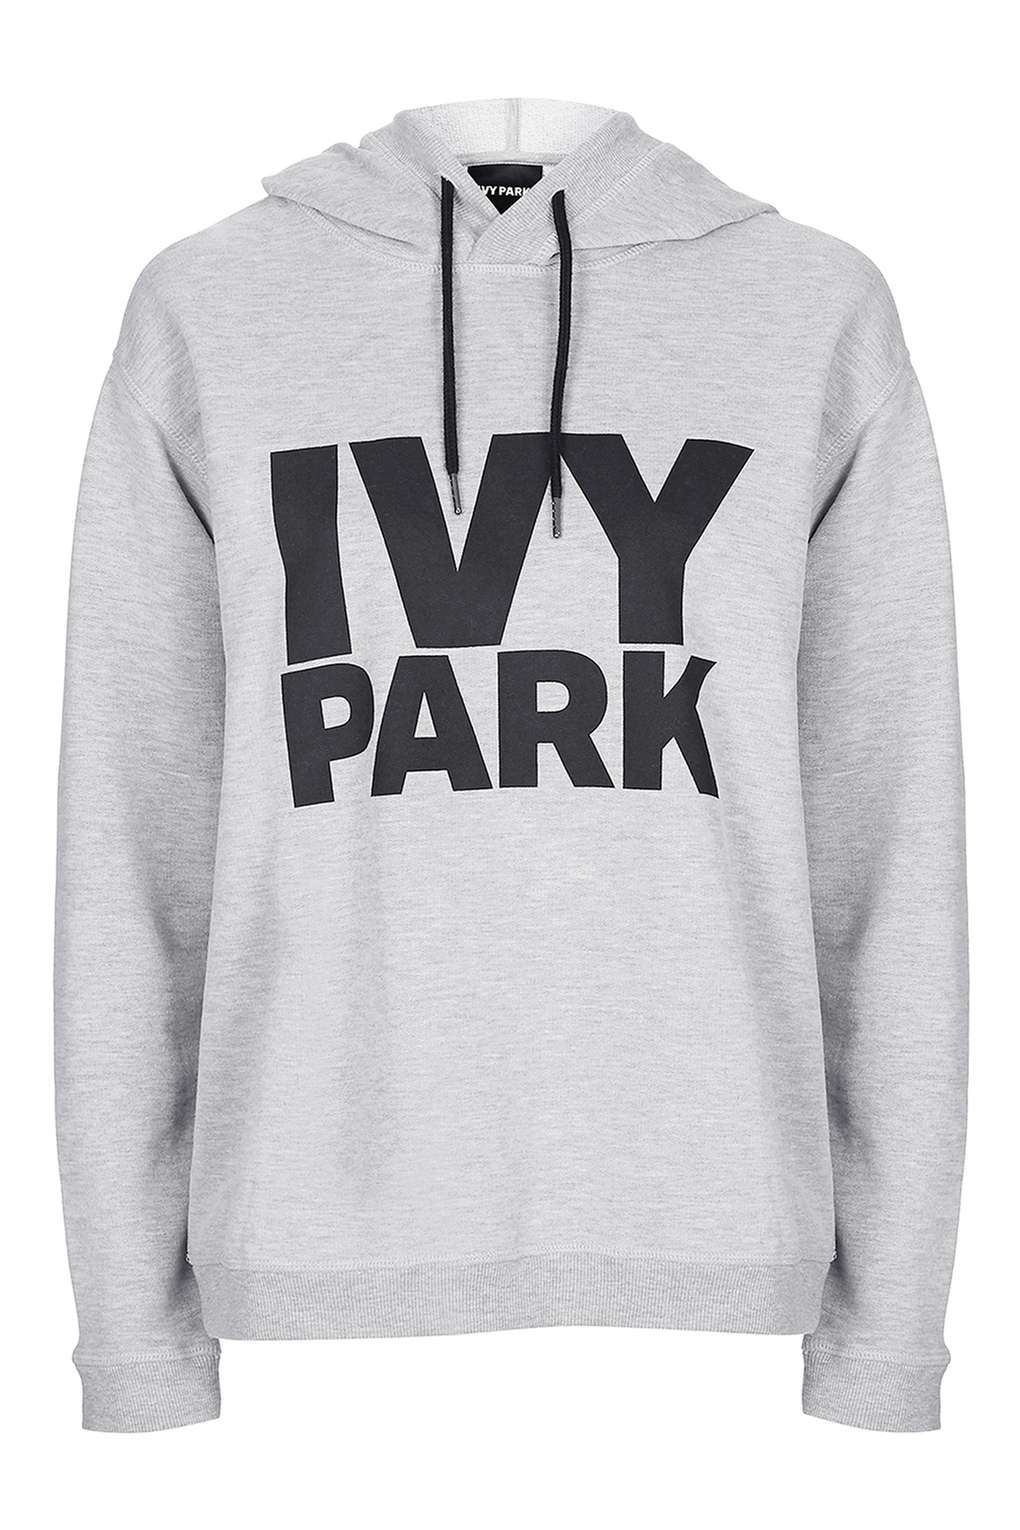 118f1c1a4771f9 Oversized Logo Hoodie by Ivy Park